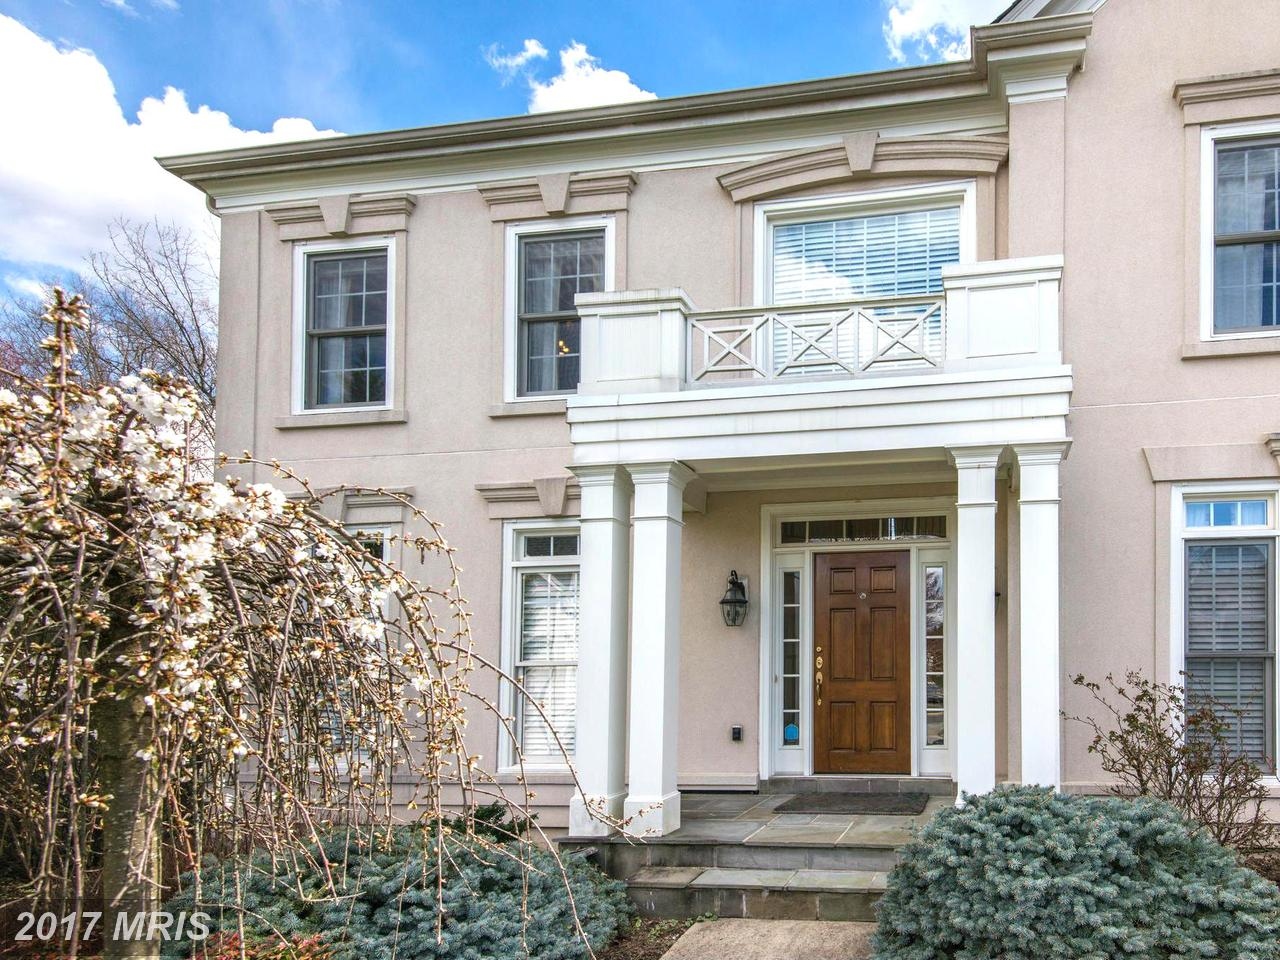 Additional photo for property listing at Colonial, Detached - MCLEAN, VA 1423 MAYHURST BLVD McLean, Virginia,22102 Amerika Birleşik Devletleri